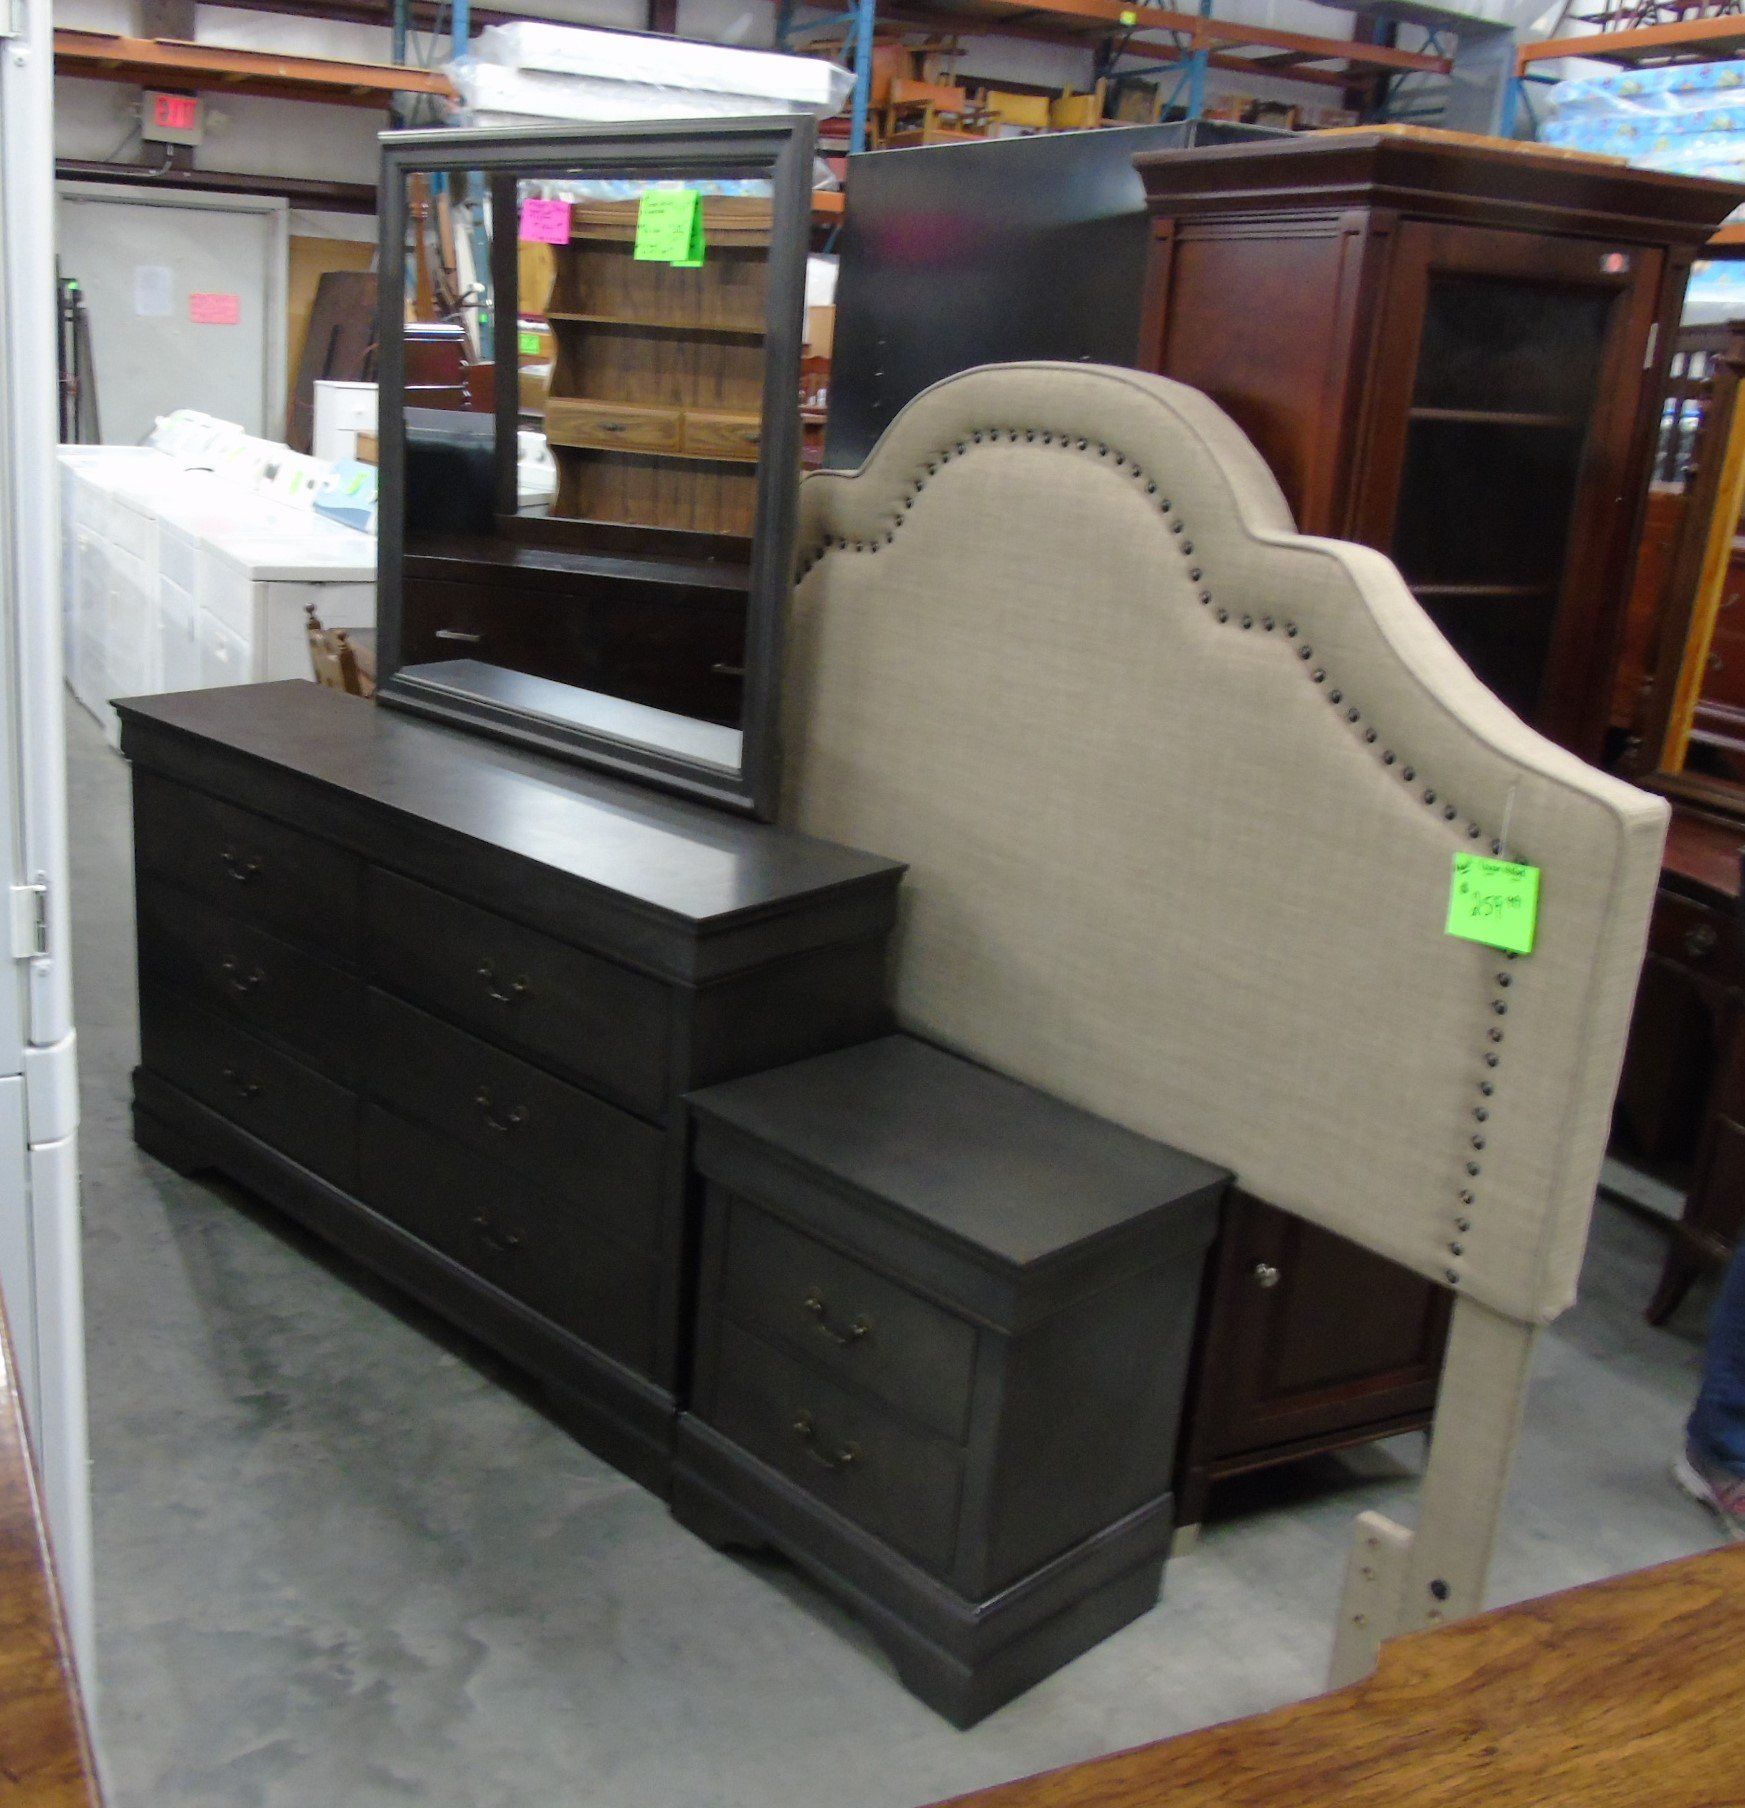 Bedroom Furniture New Nearly New Thrift Shop Fayetteville Hope Mills Spring Lake Fort